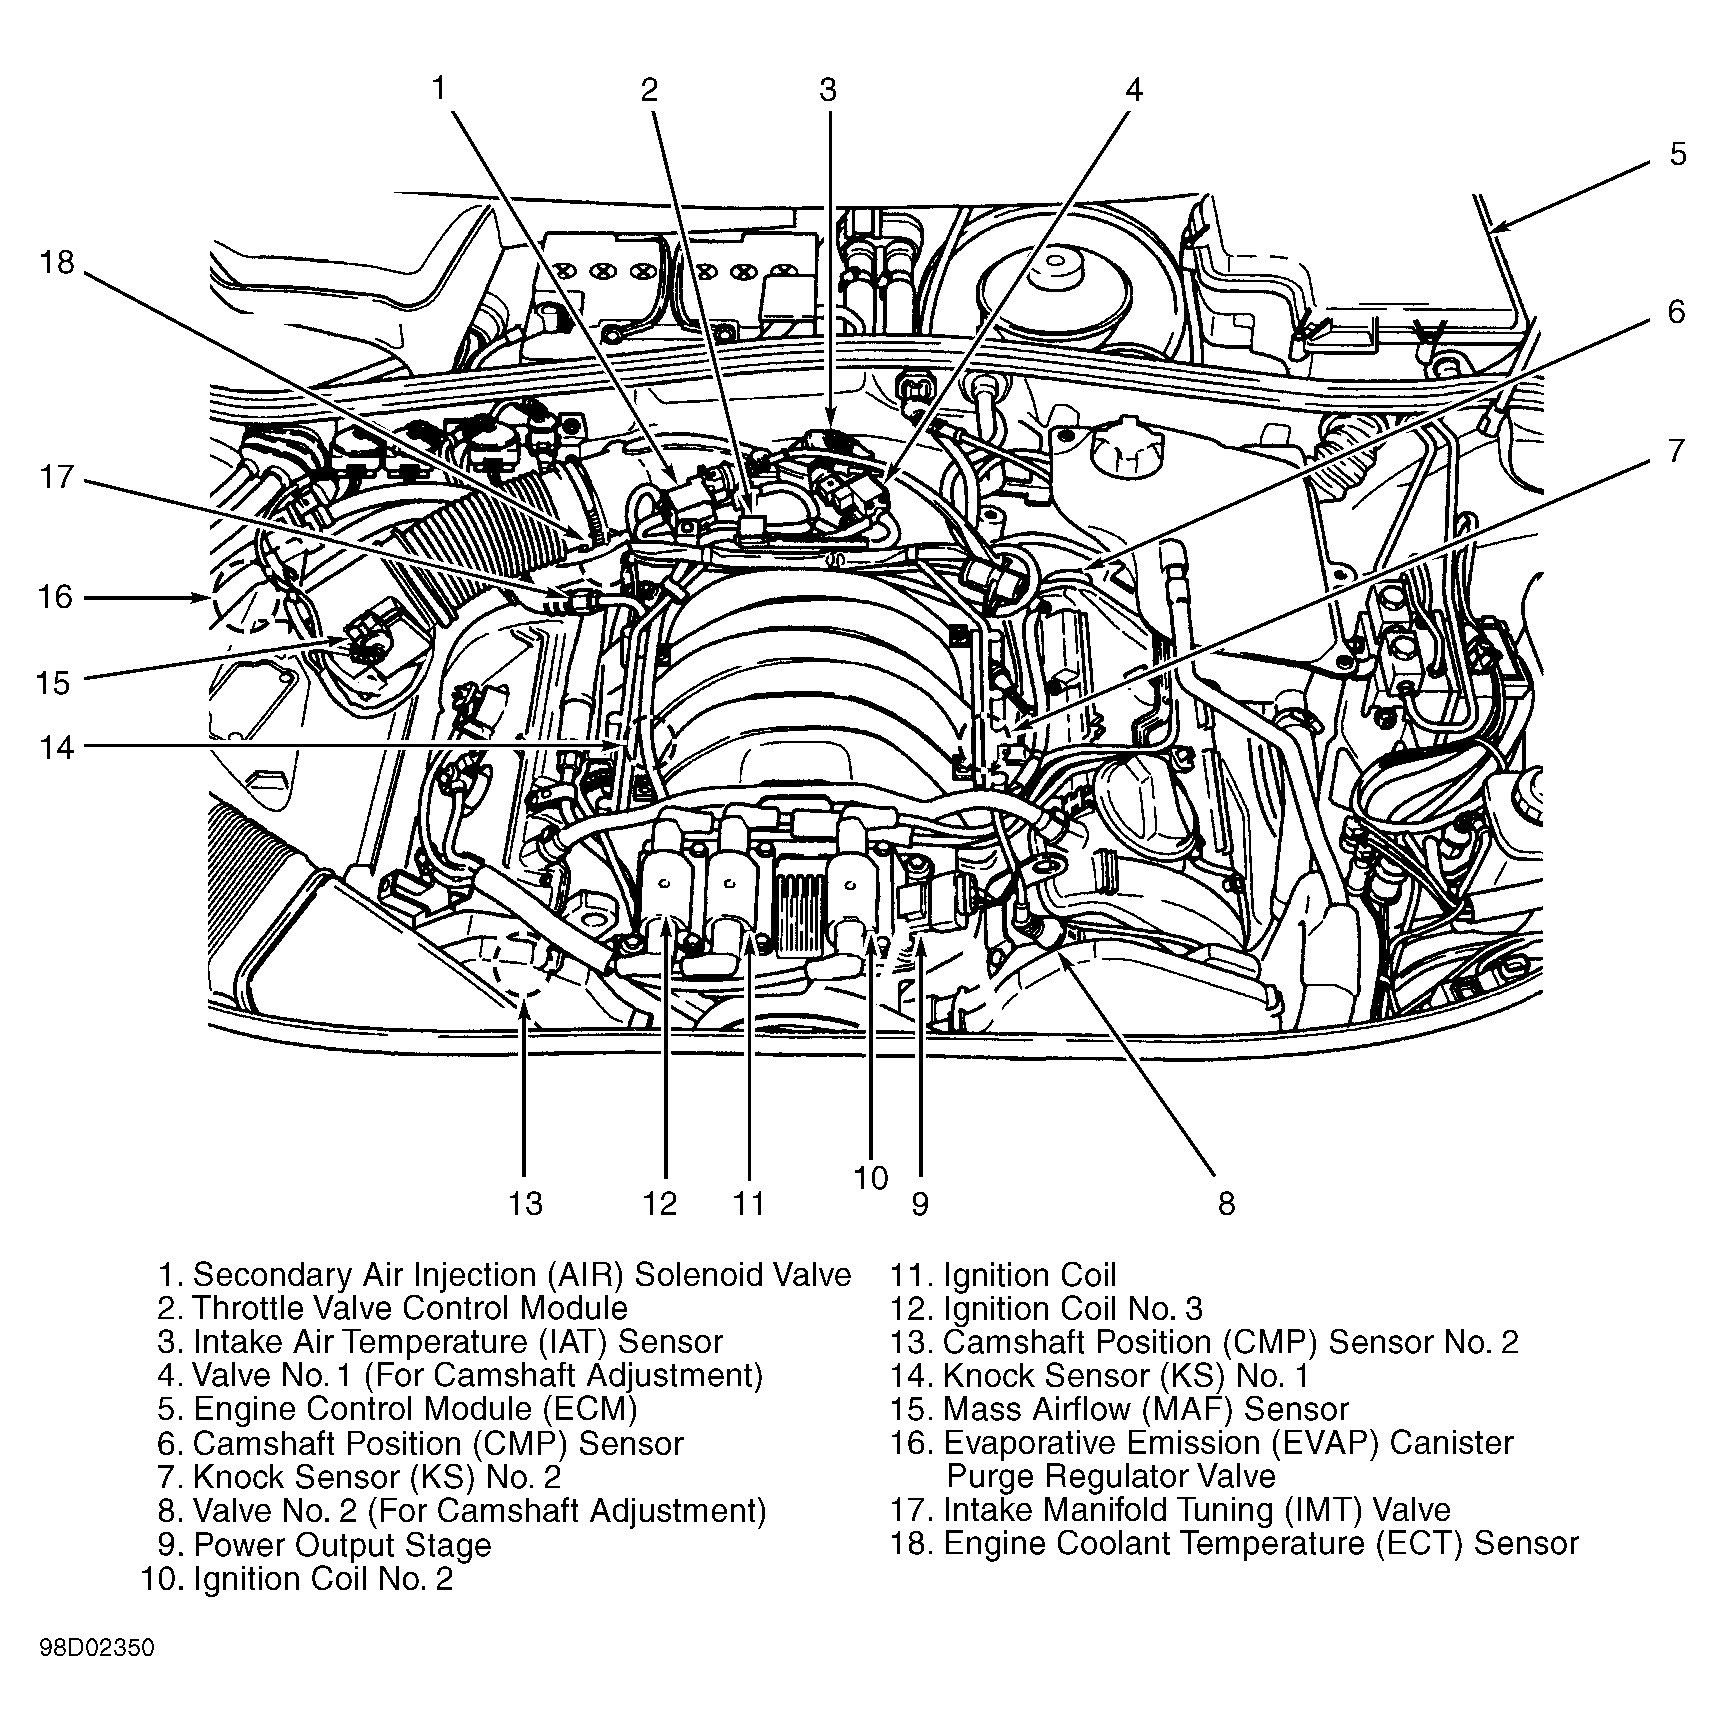 New 1998 Audi A4 Radio Wiring Diagram Audi A4 Dodge Ram 1500 Engineering